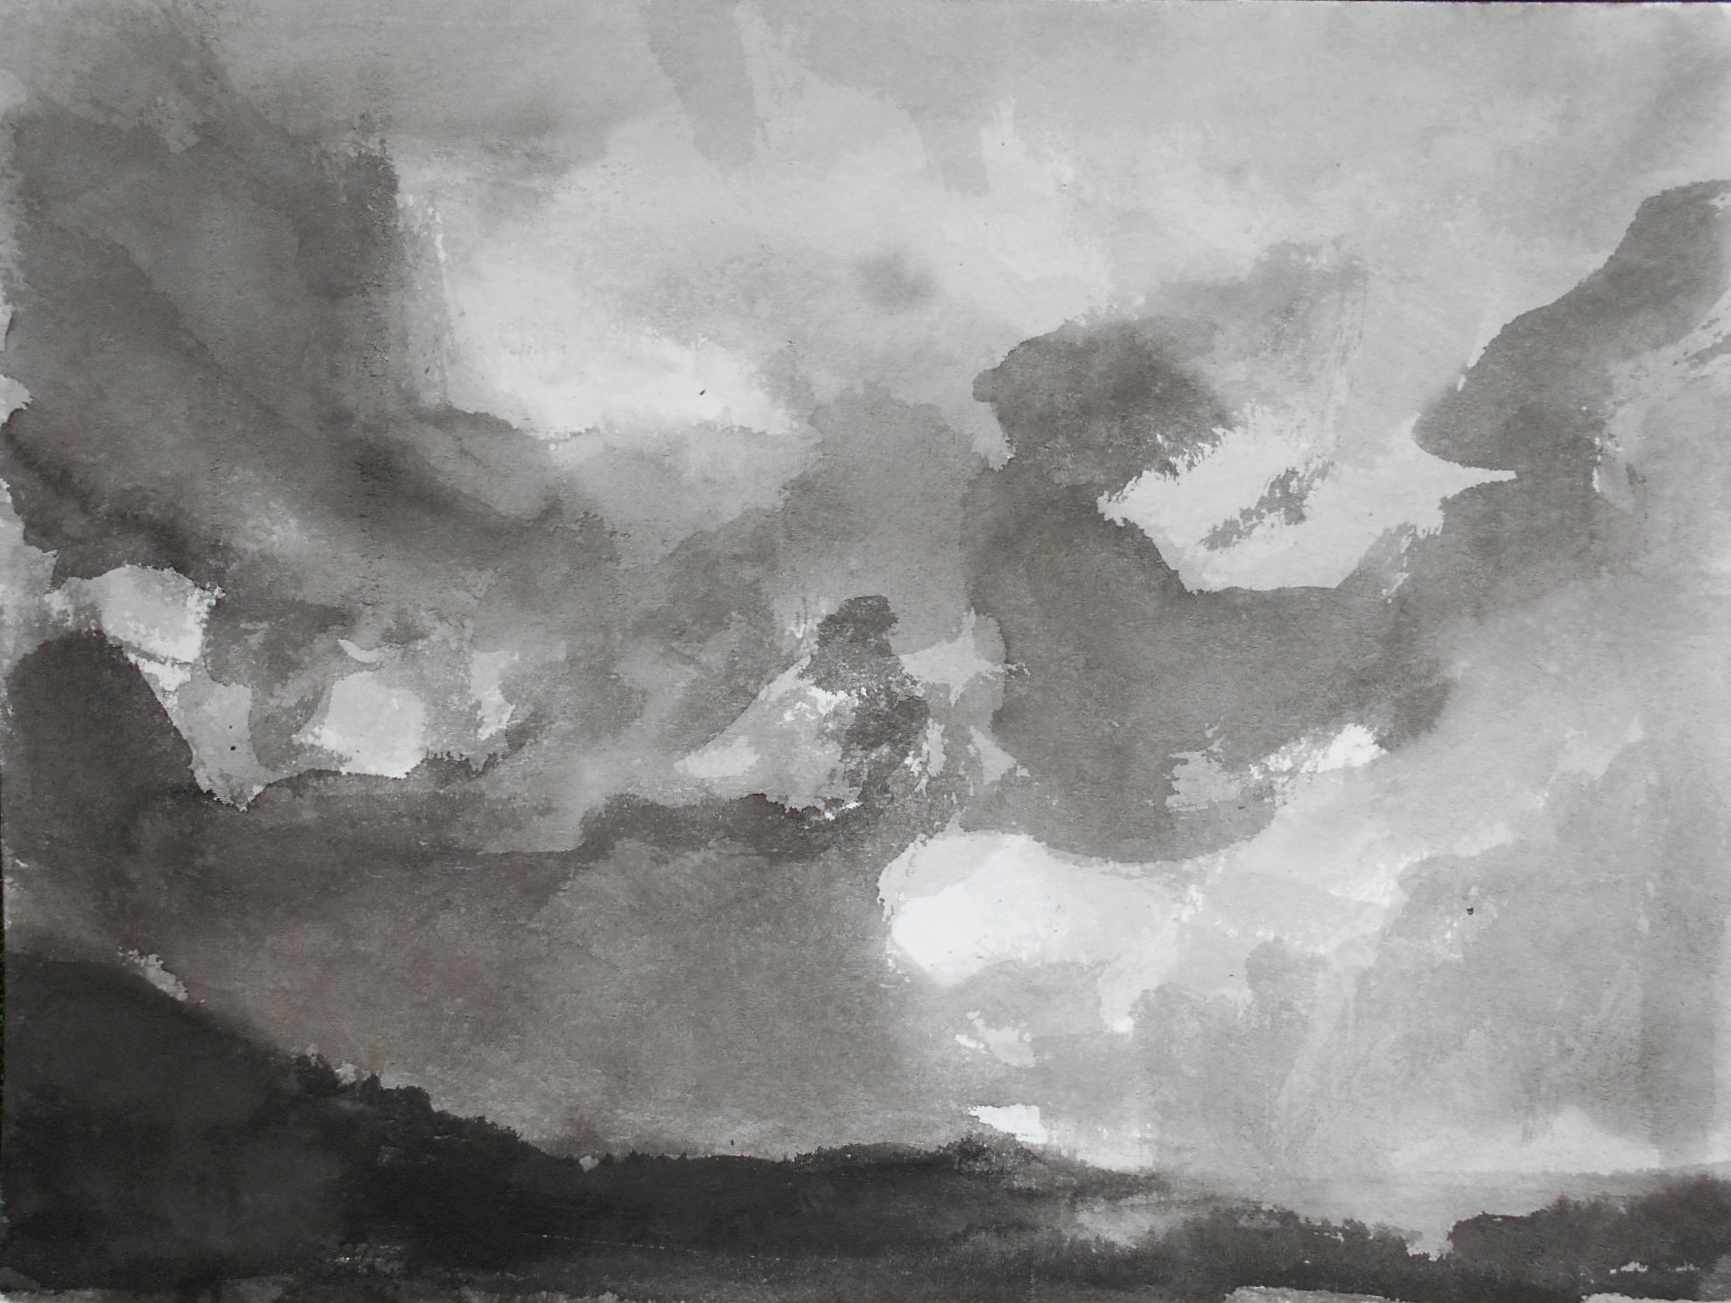 From Podlasie Region (Poland), 30x40cm, ink, paper, 2018